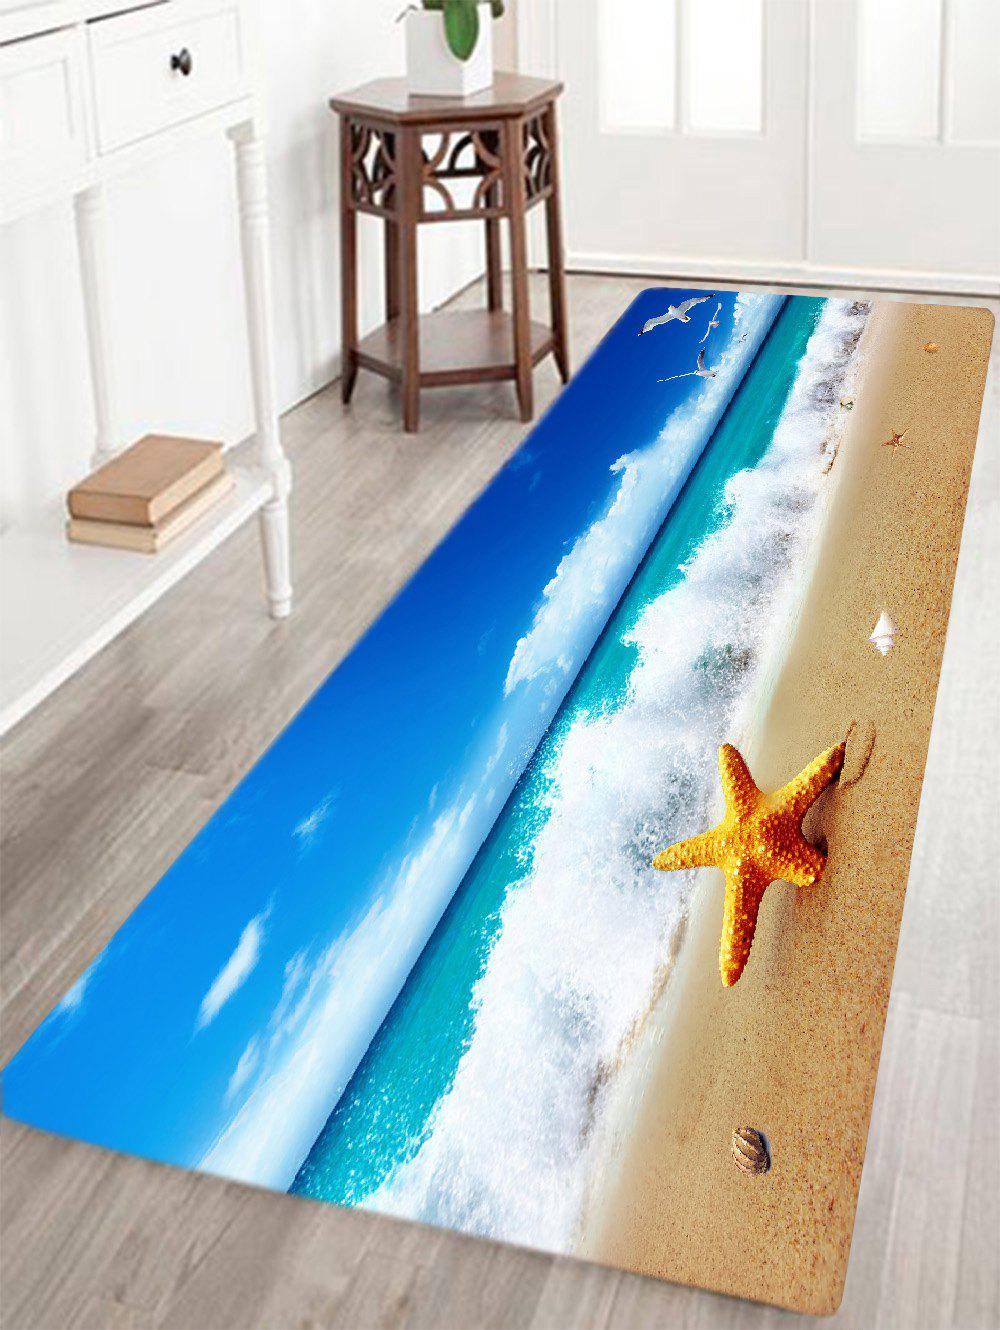 2018 tapis de plage de bord de mer bleu largeur pouces longueur pouces in tapis de bain online. Black Bedroom Furniture Sets. Home Design Ideas